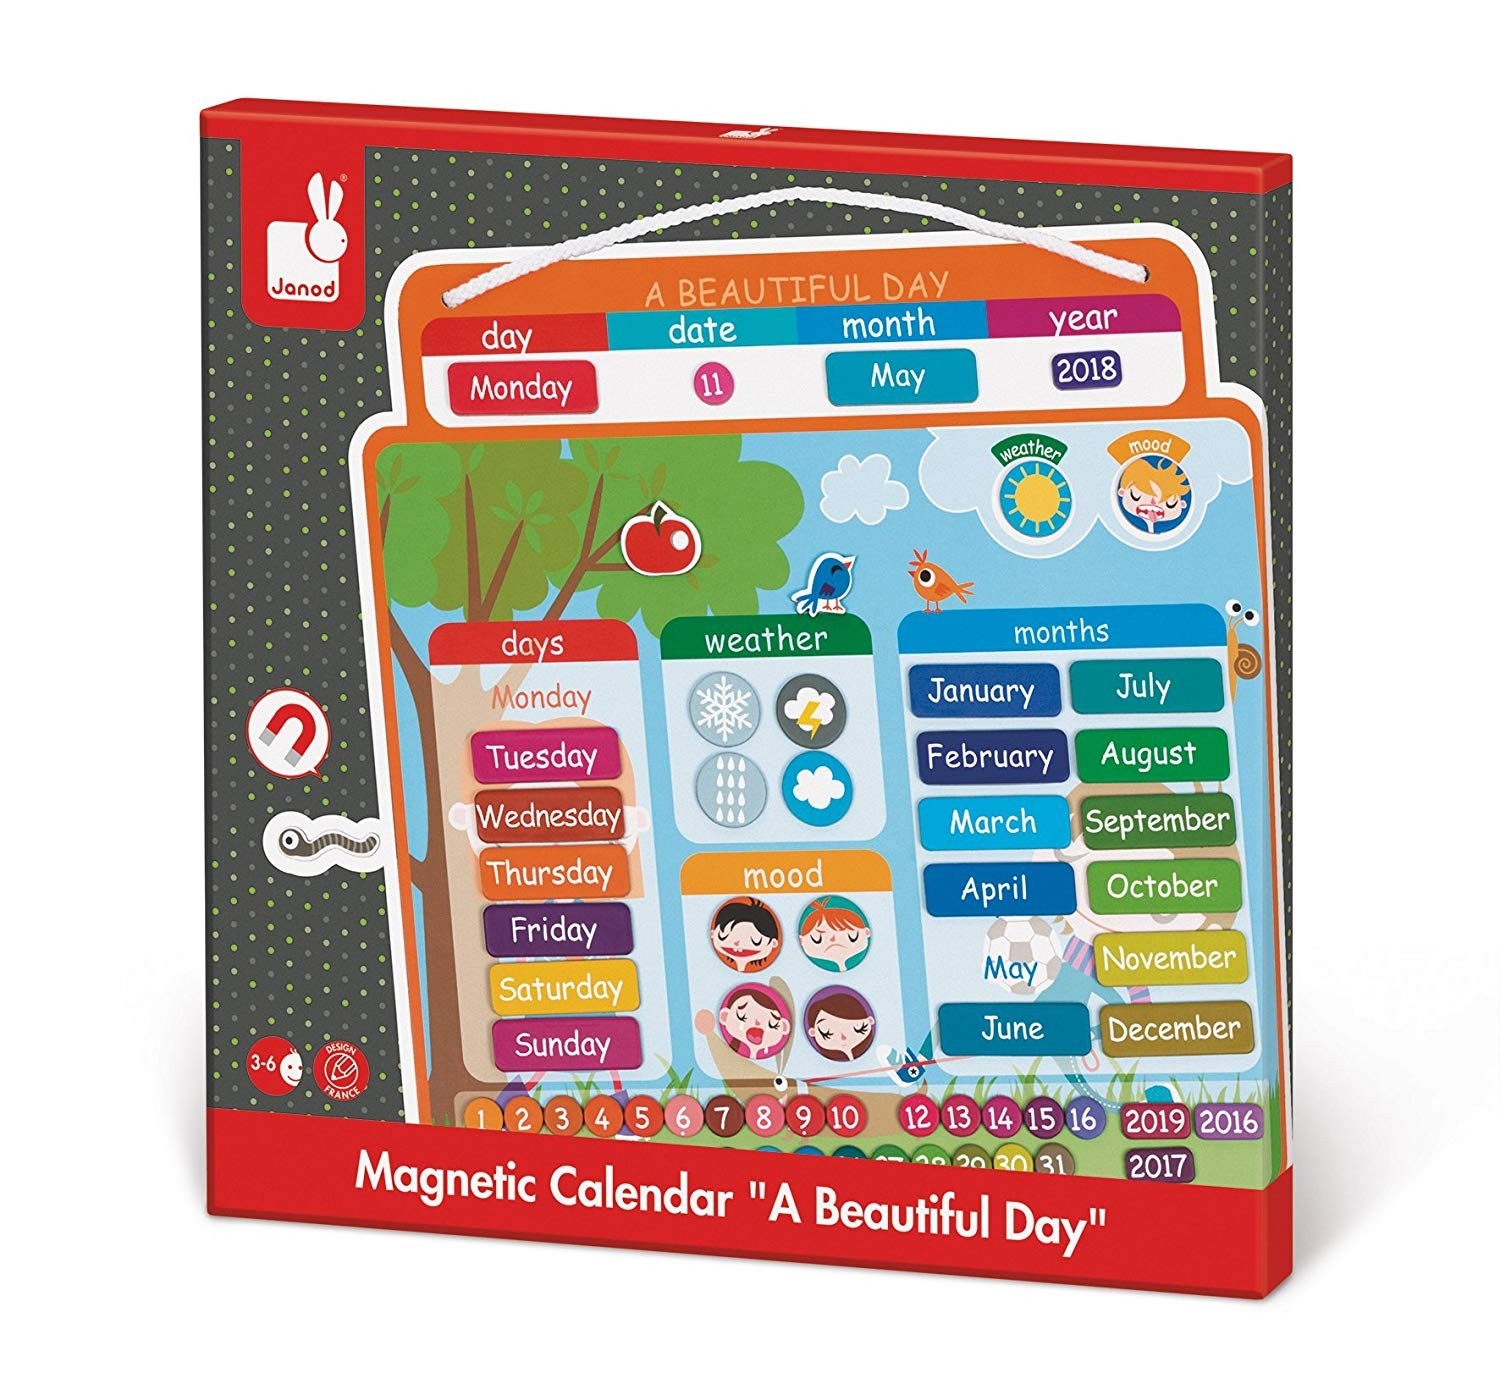 March Reading Month Calendar Activities Actual Janod J A Beautiful Day Magnetic Calendar English Version Of March Reading Month Calendar Activities Más Populares Old Style and New Style Dates